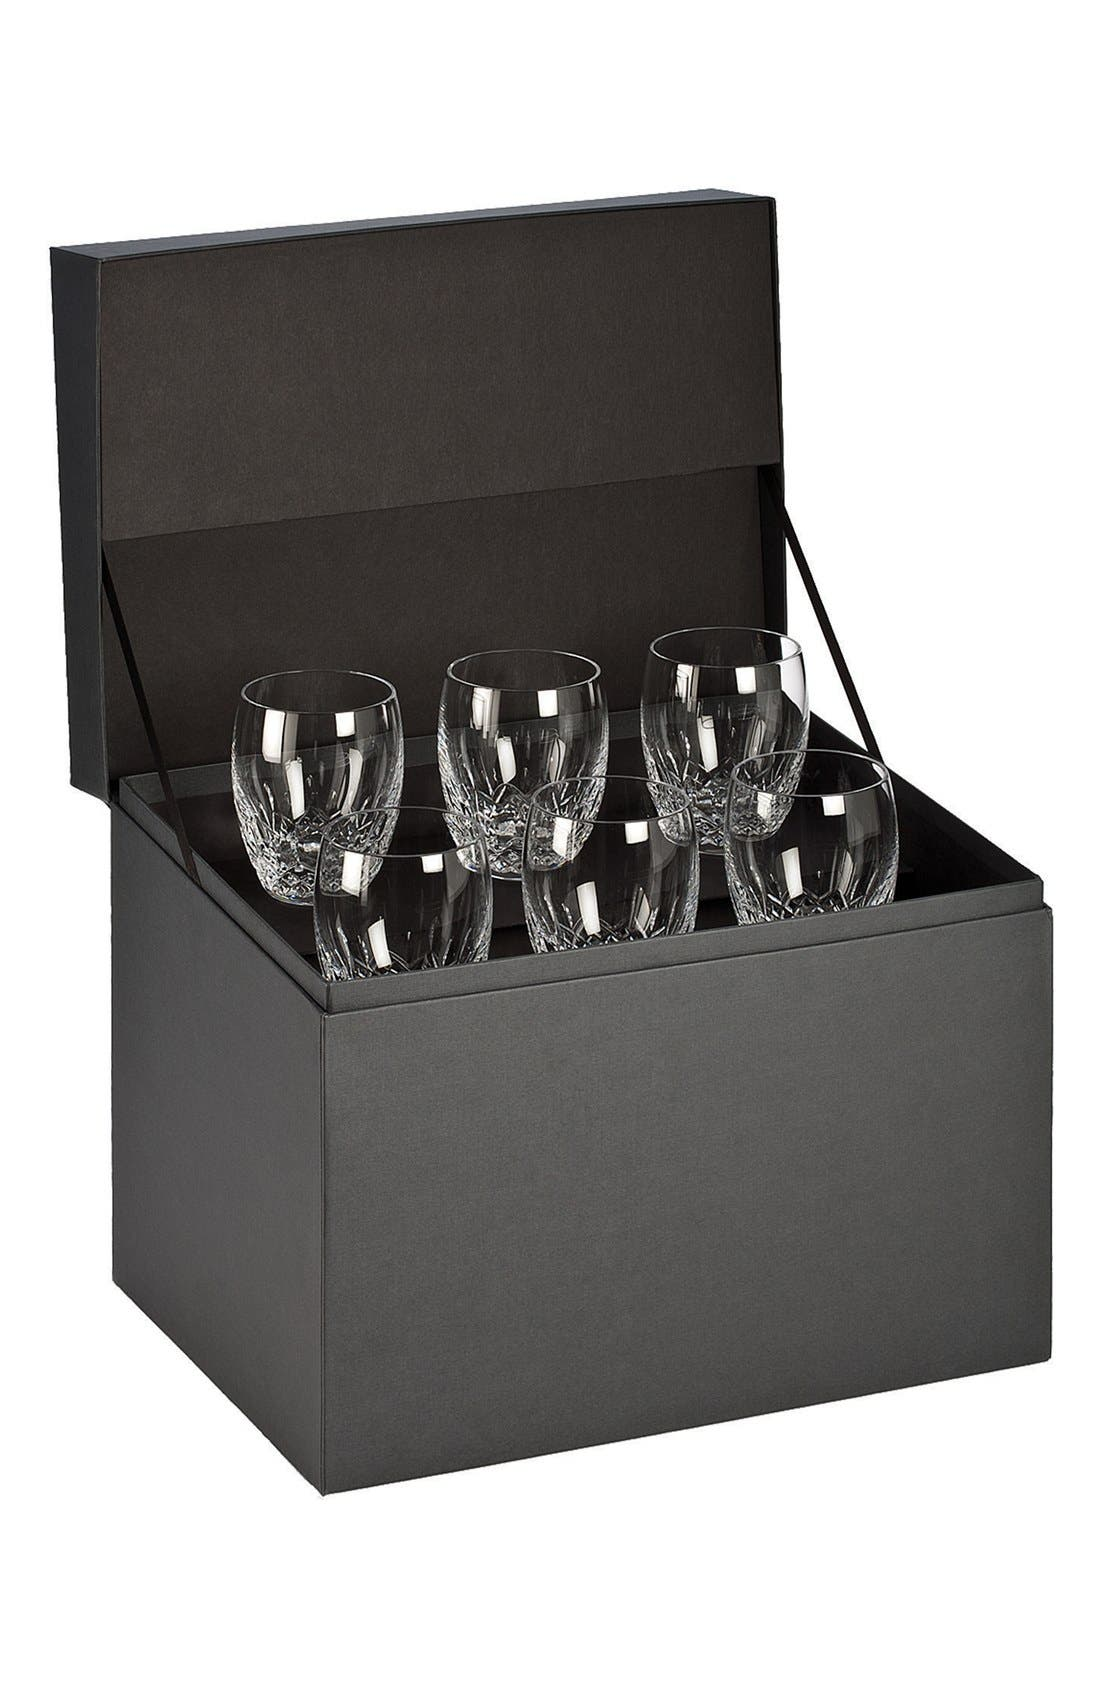 Alternate Image 1 Selected - Waterford 'Lismore Essence' Lead Crystal Double Old Fashioned Glasses (Set of 6)